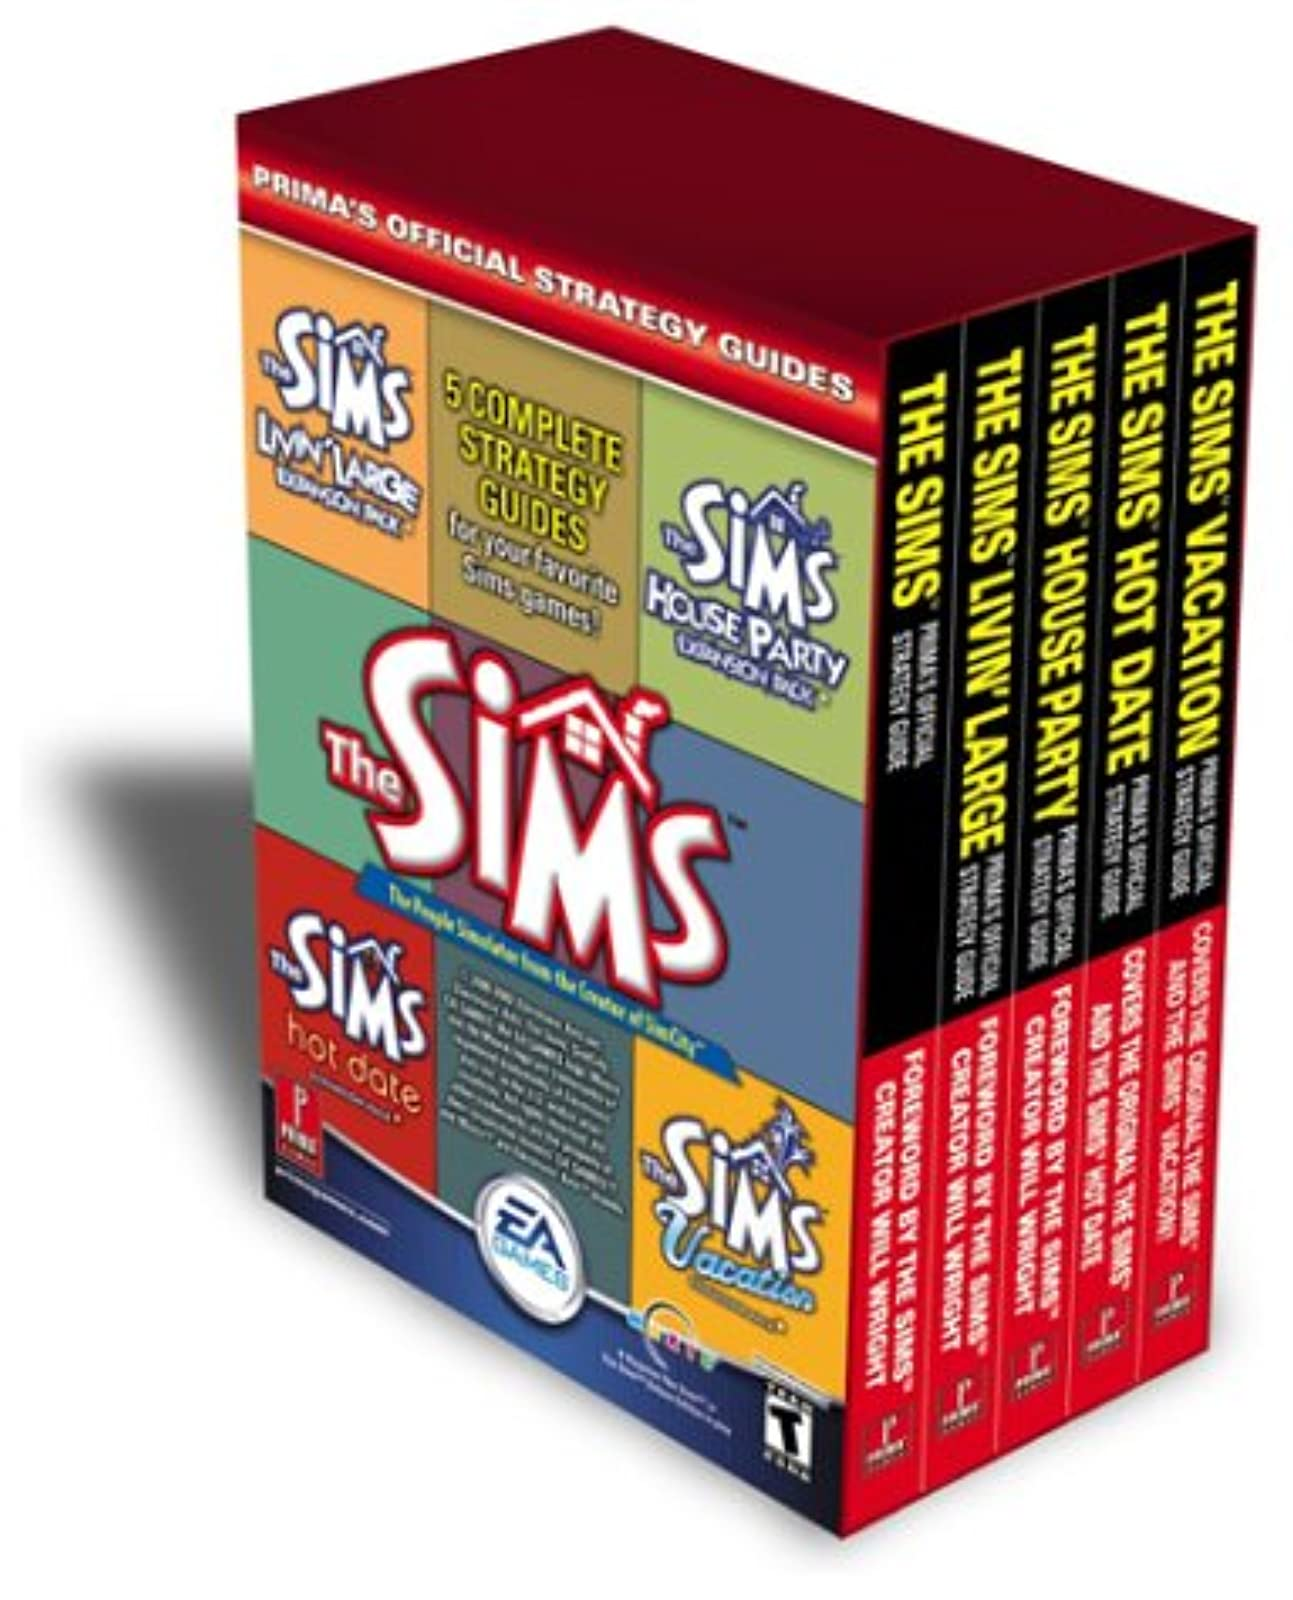 The Sims: 5 Complete Strategy Guides Prima's Official Strategy Guide